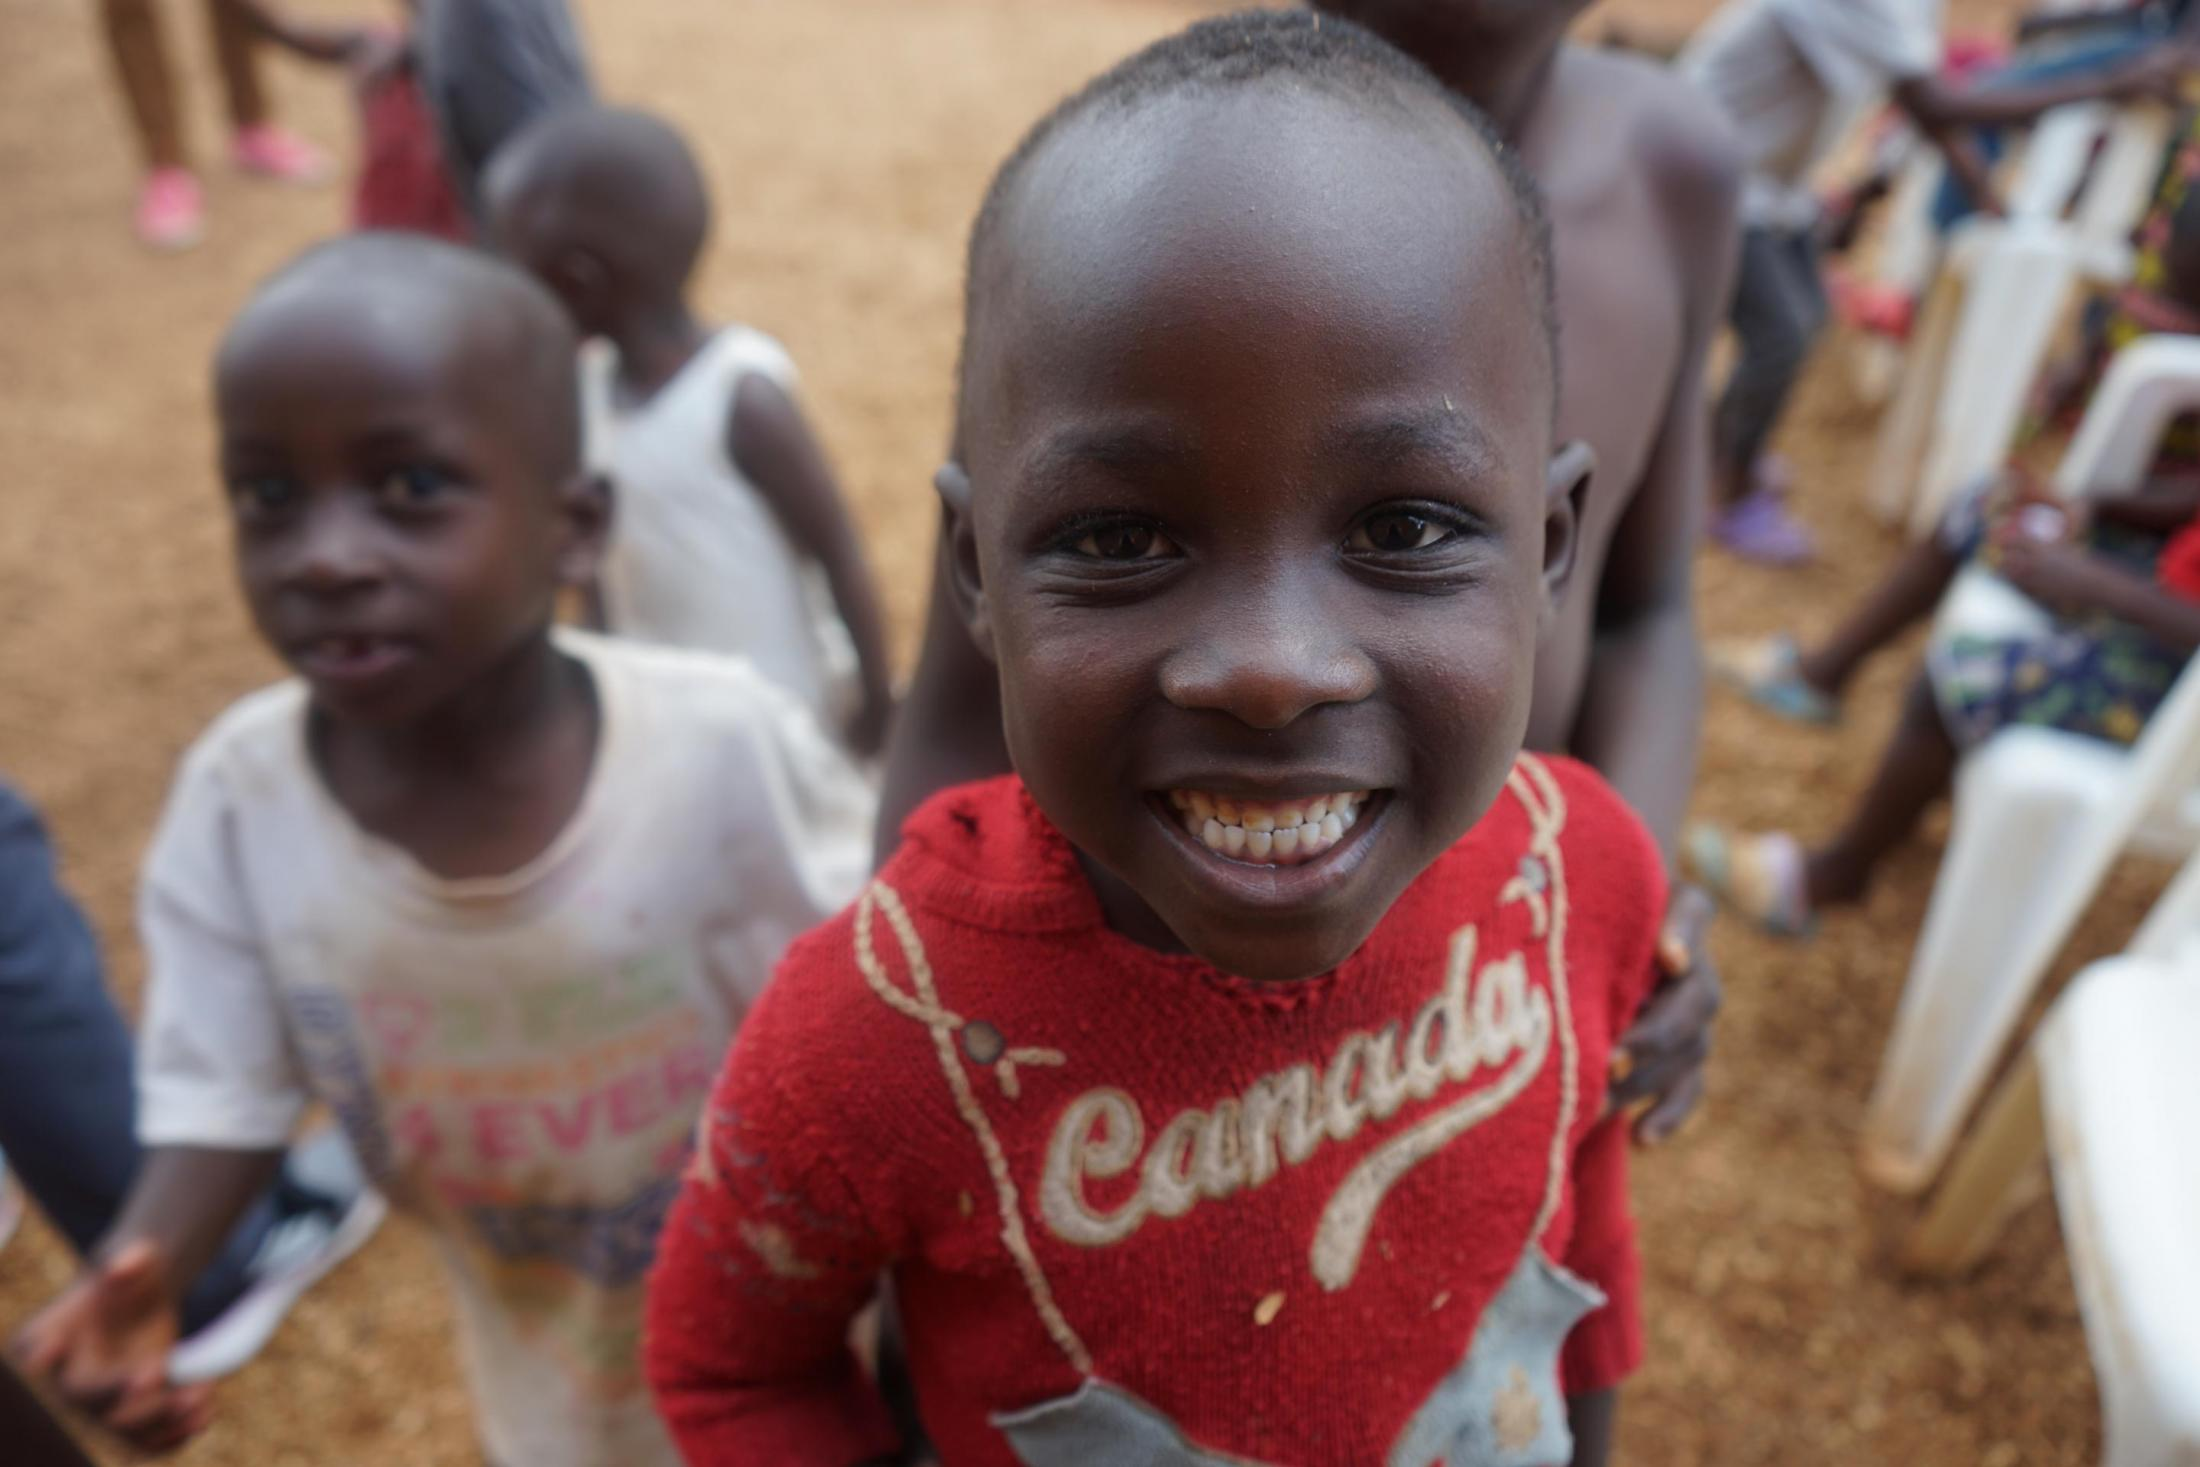 Children in Uganda.